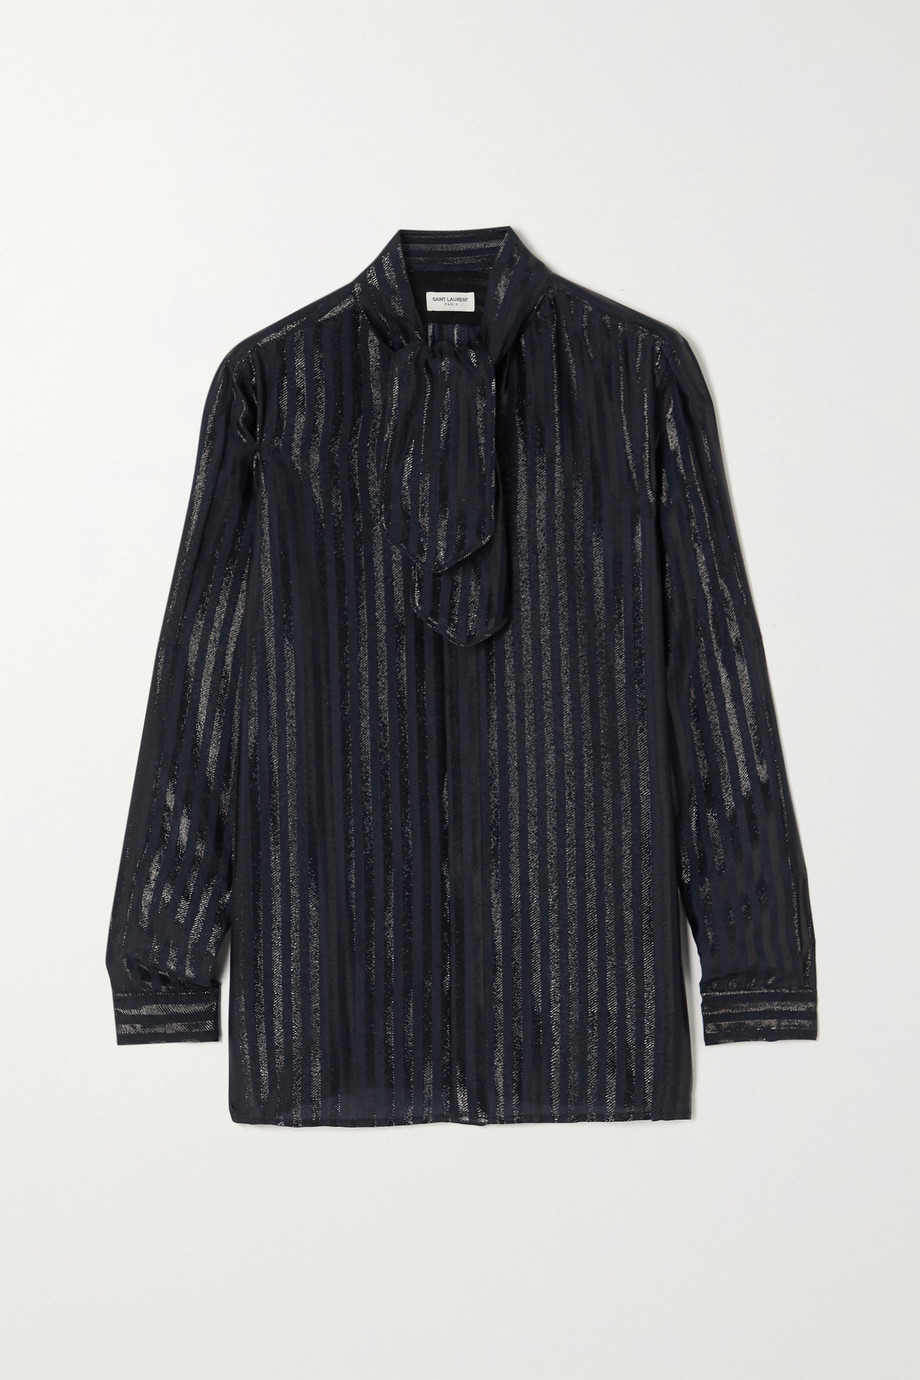 SAINT LAURENT Tie-neck striped metallic silk-blend shirt